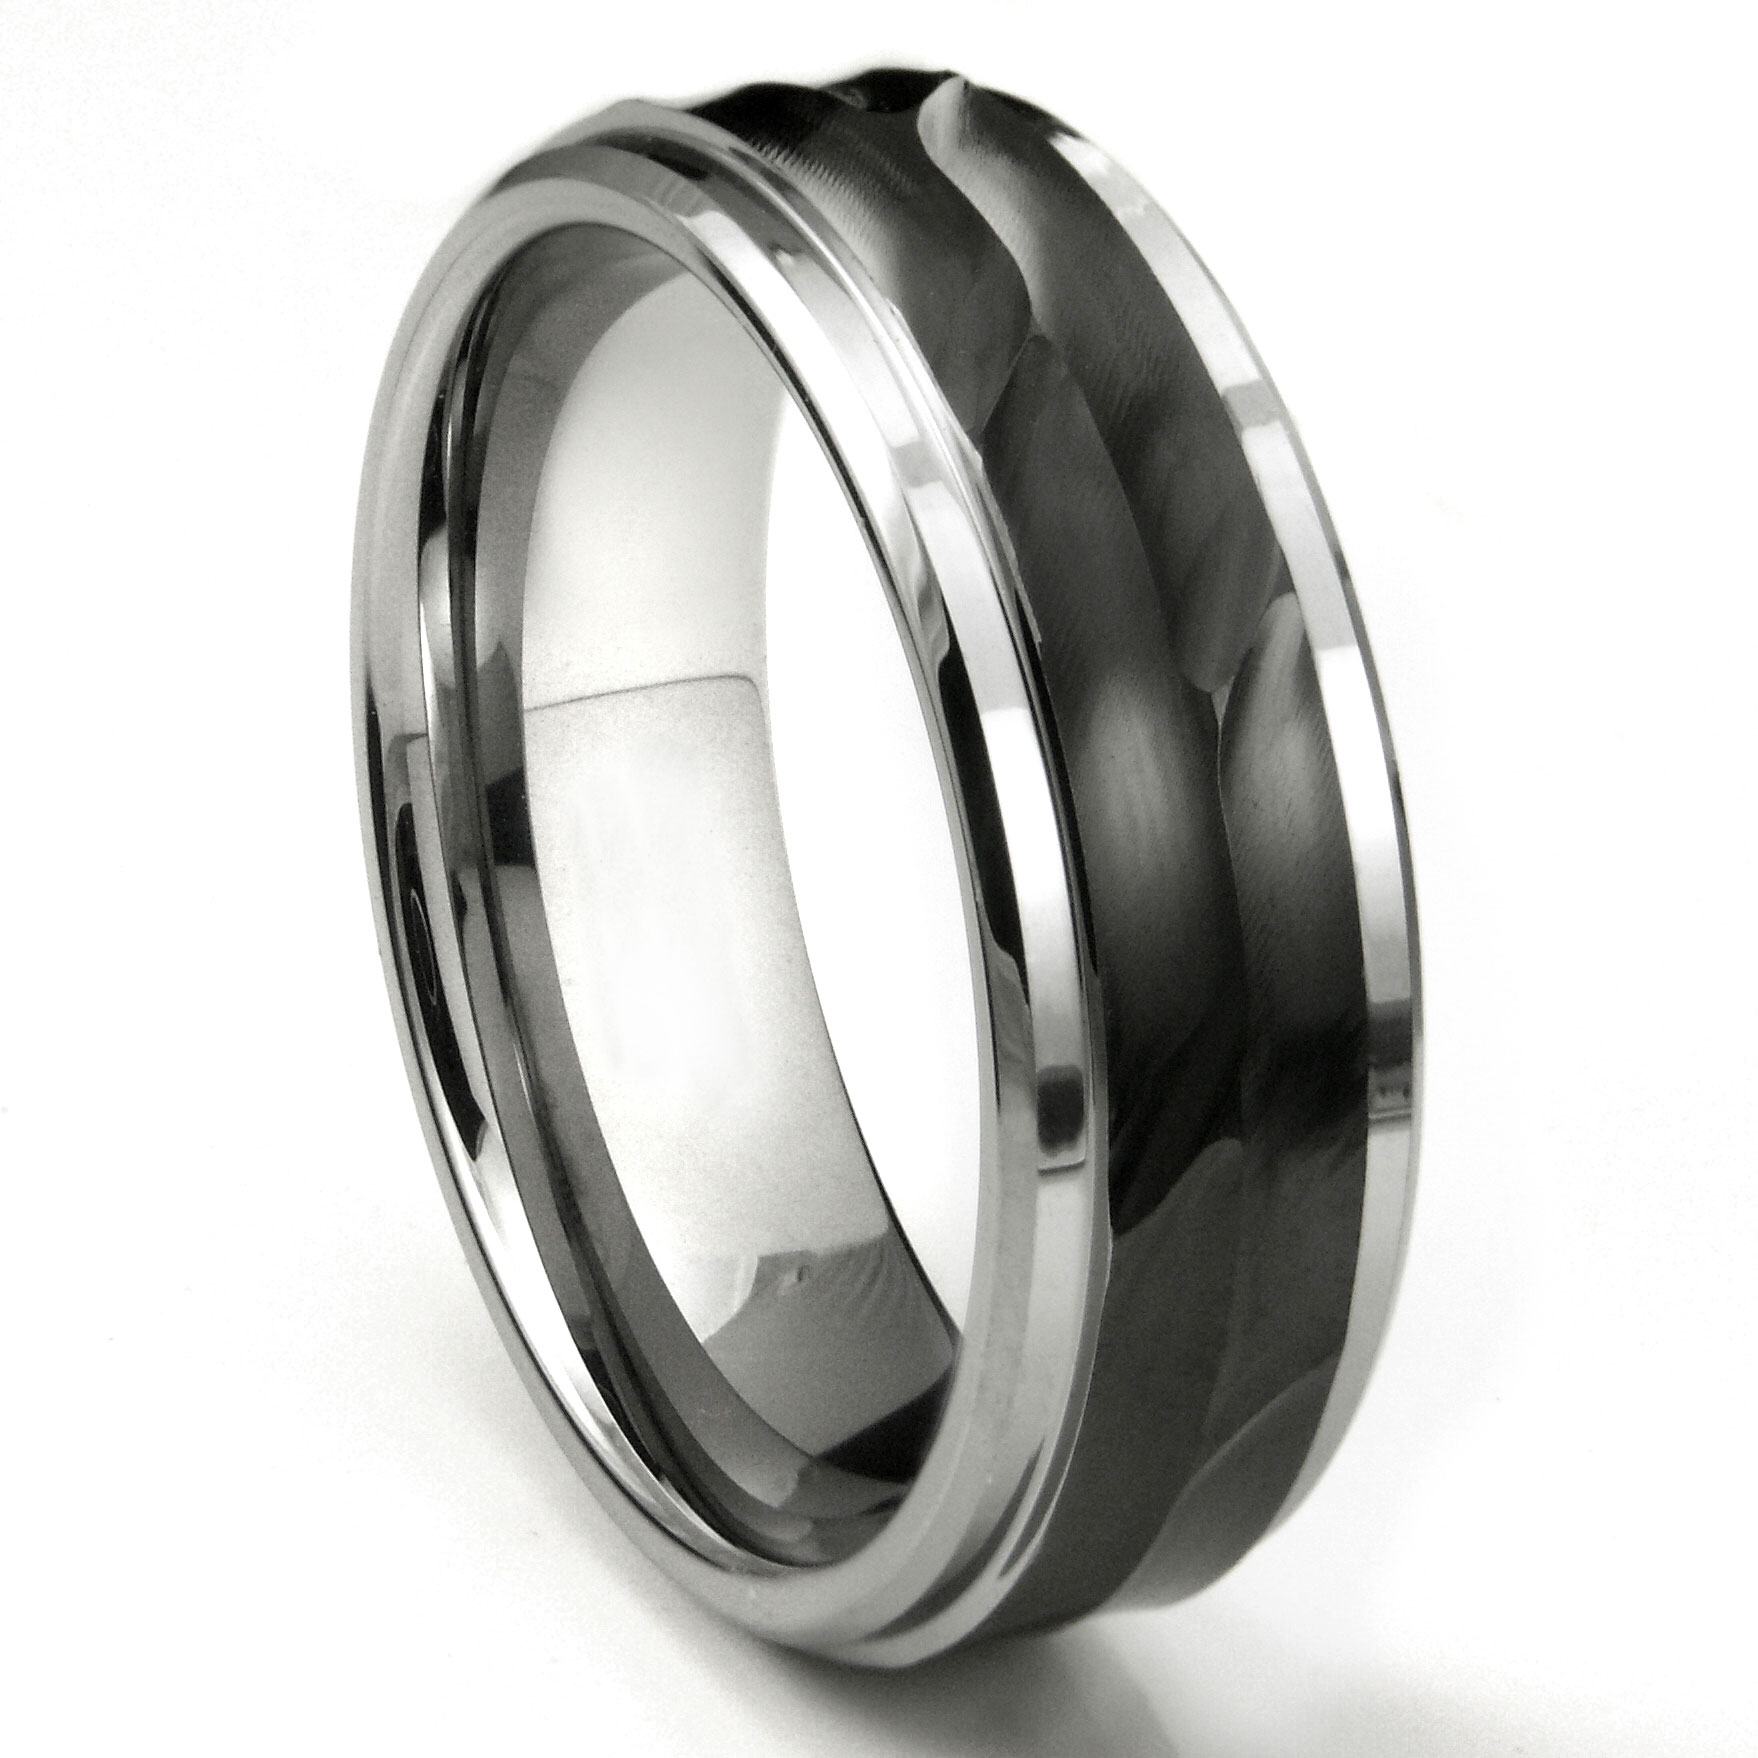 tungsten carbide 8mm wave finish wedding band ring. Black Bedroom Furniture Sets. Home Design Ideas